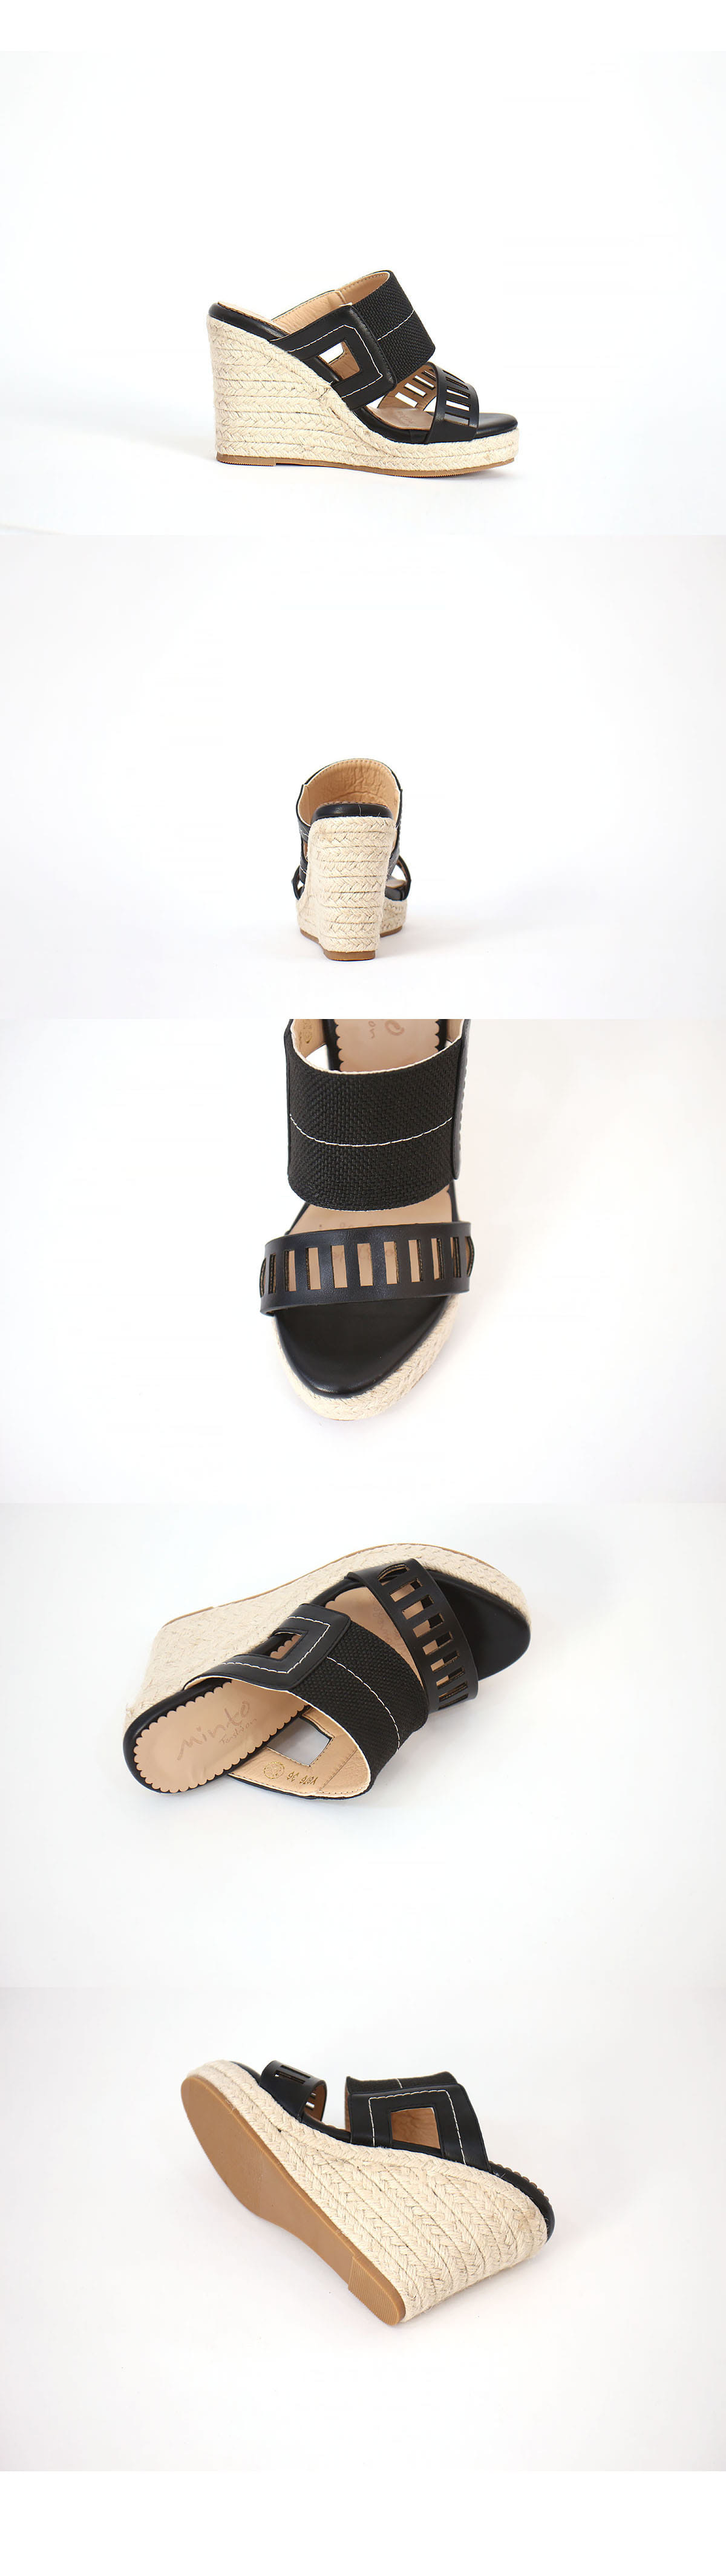 Punching Wedge Mule Sandals